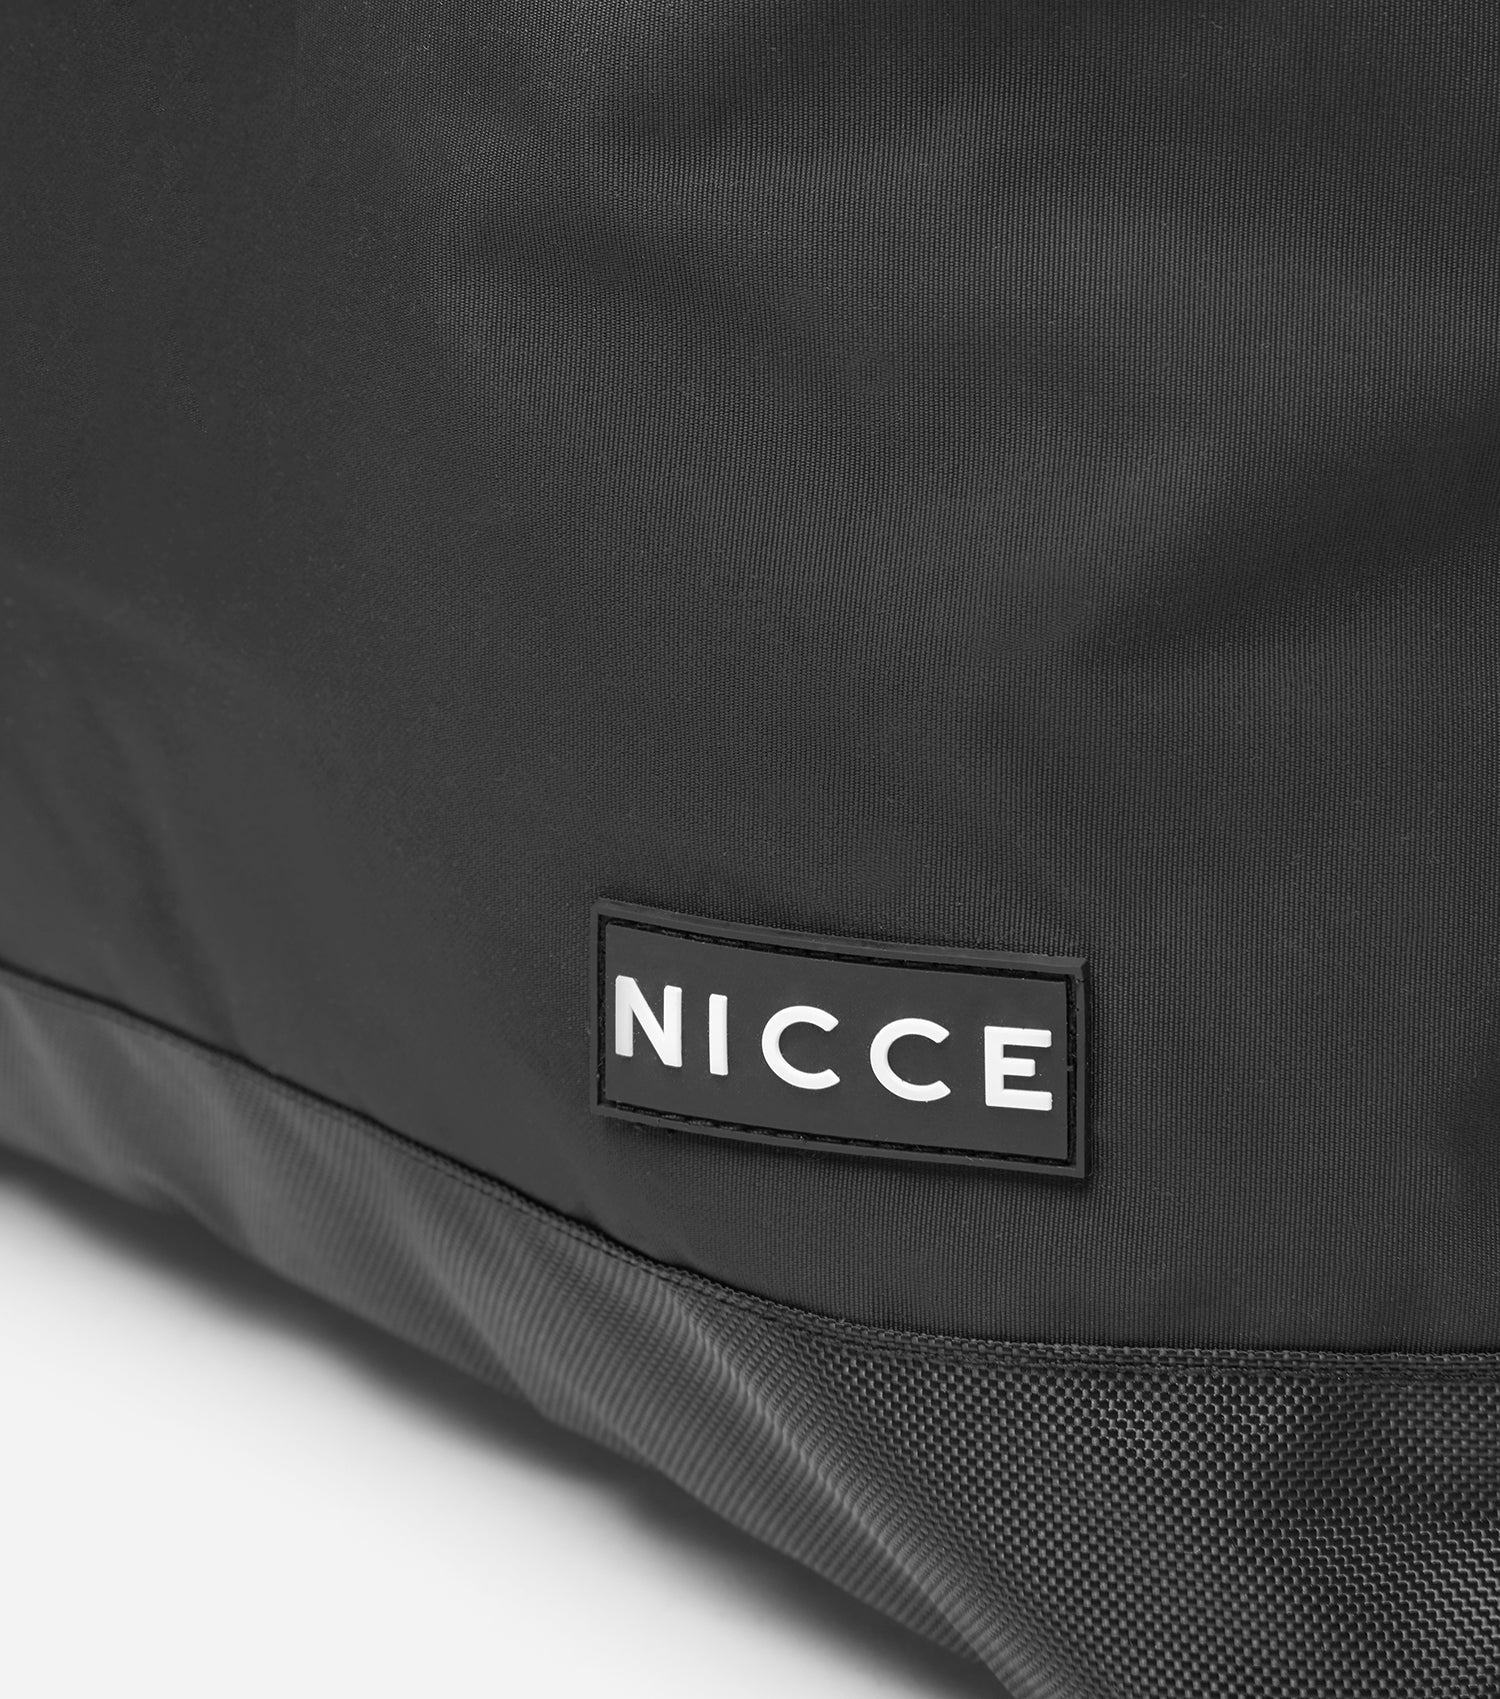 NICCE Fex Tote Bag | Black, Bags